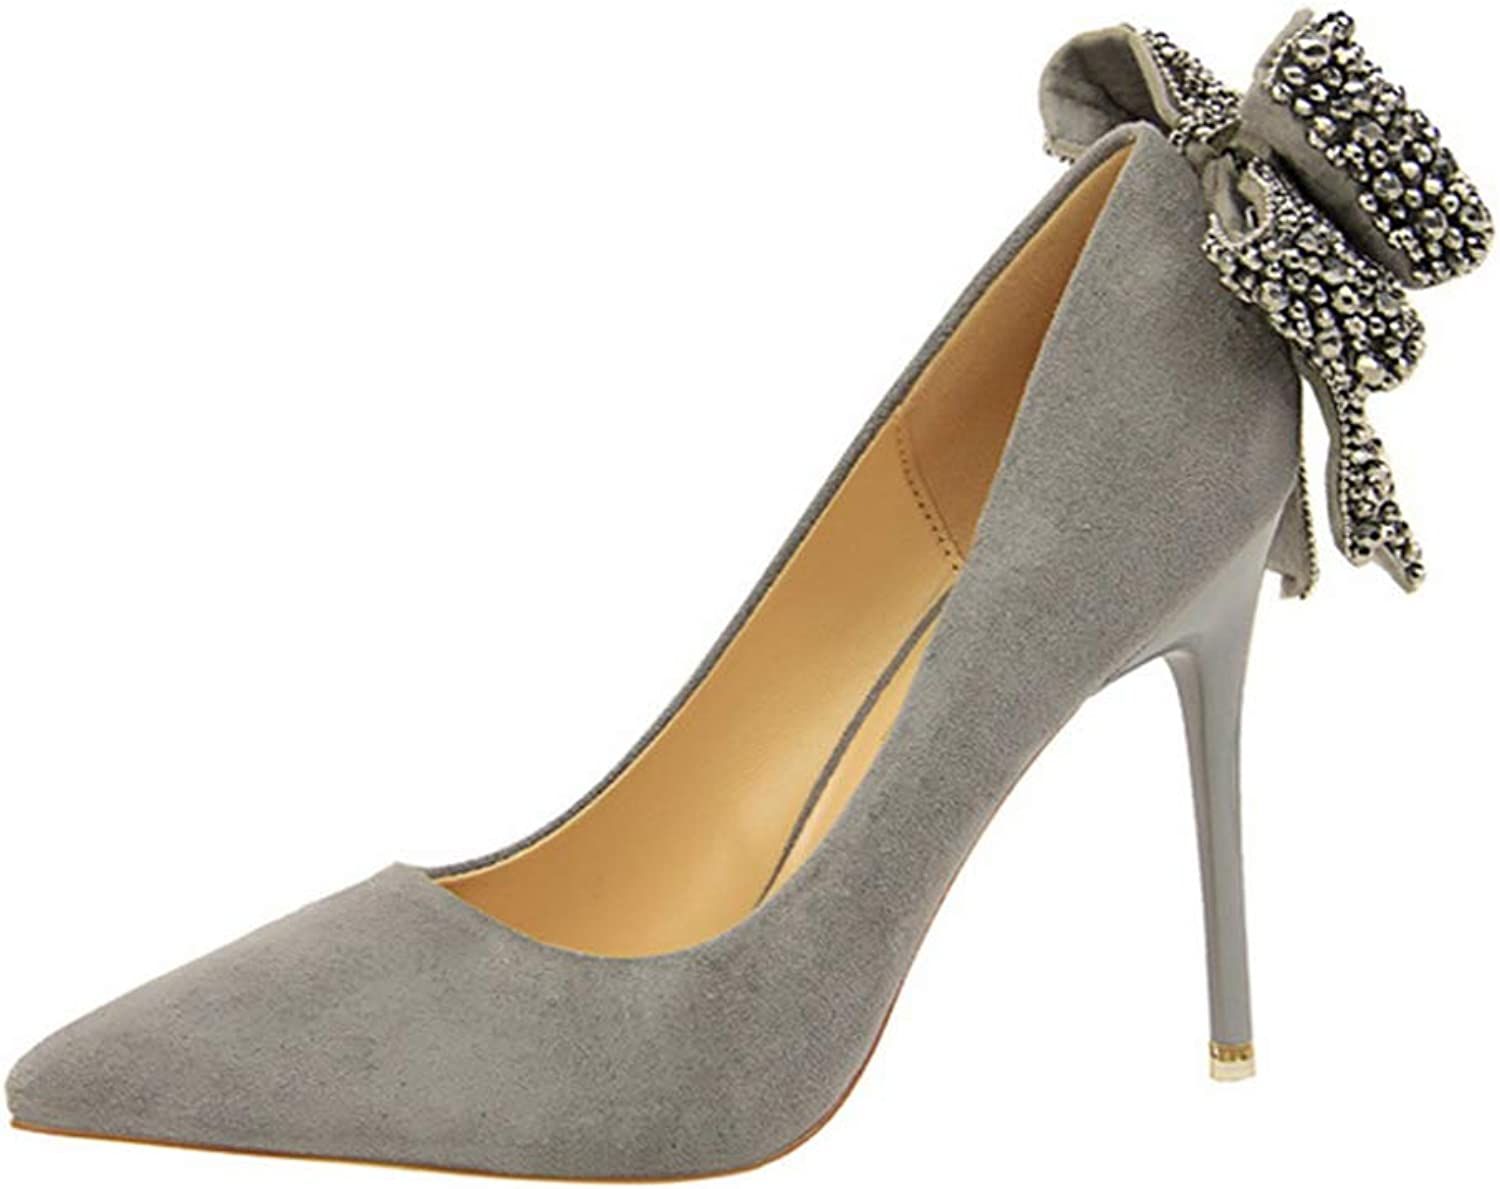 Drew Toby Women Pumps Crystal Butterfly-Knot Shallow Wedding Suede Pointed Toe High Heels